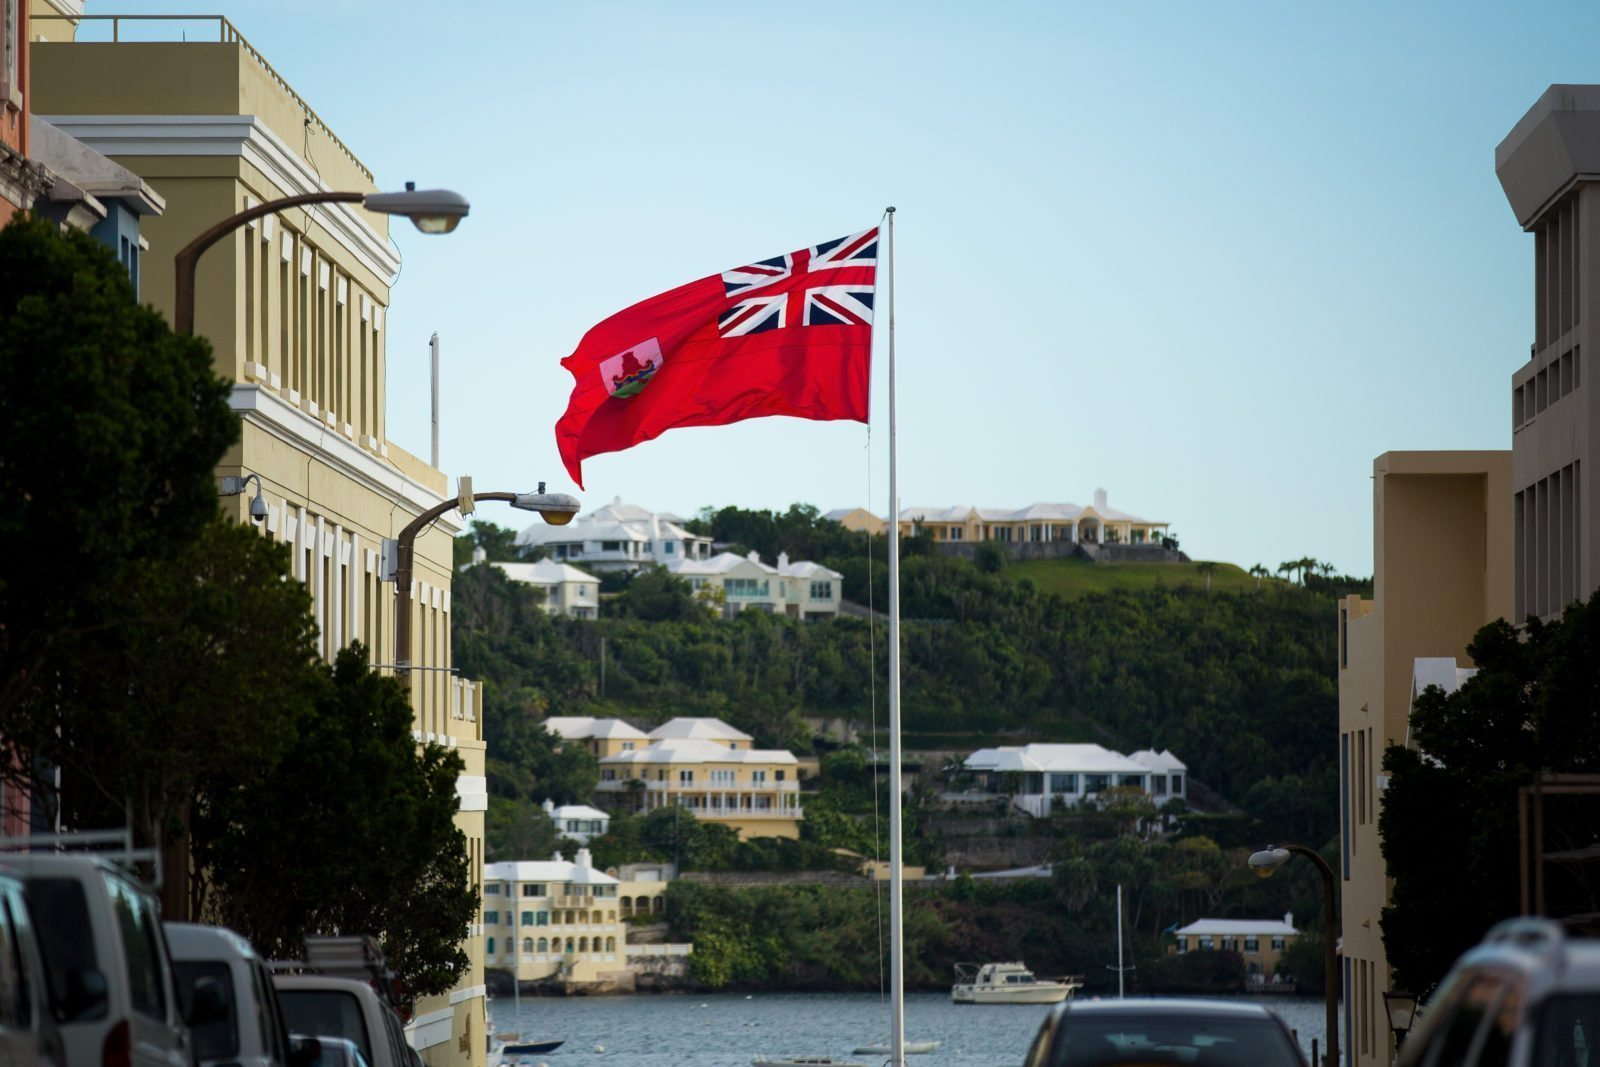 Bermuda just became the first country to legalize marriage equality twice